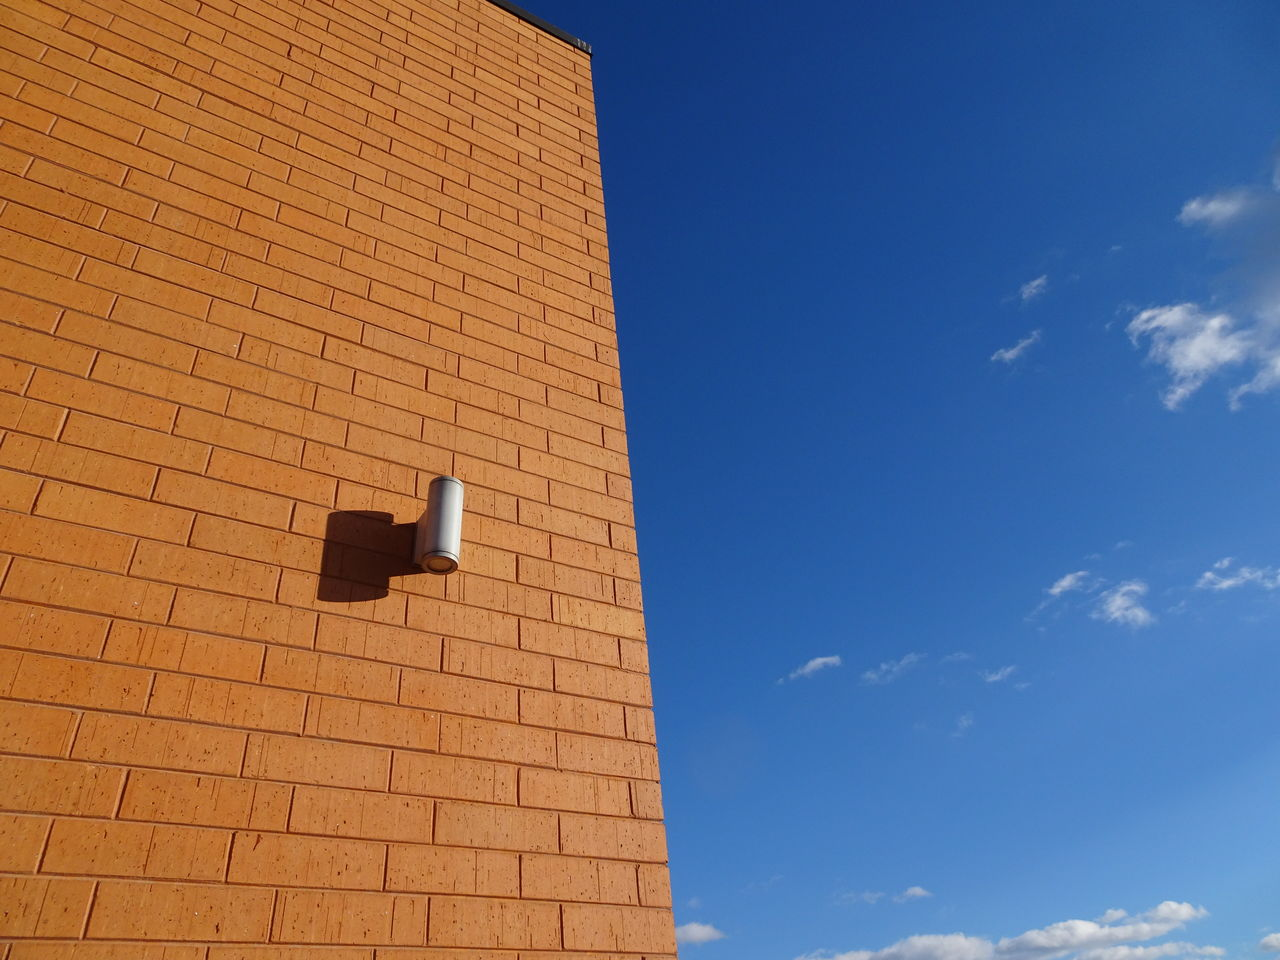 brick building and blue sky Apartment Buildings Architecture Architecture Blue Sky And Clouds Brick Building Brick Wall Building Exterior Built Structure City Life Copy Space Day Exterior Design Flickr No People Outdoors Relazing Rooftop Rooftops Simple Lines Simplicity Sky Spring Summer Urban Living Washington State